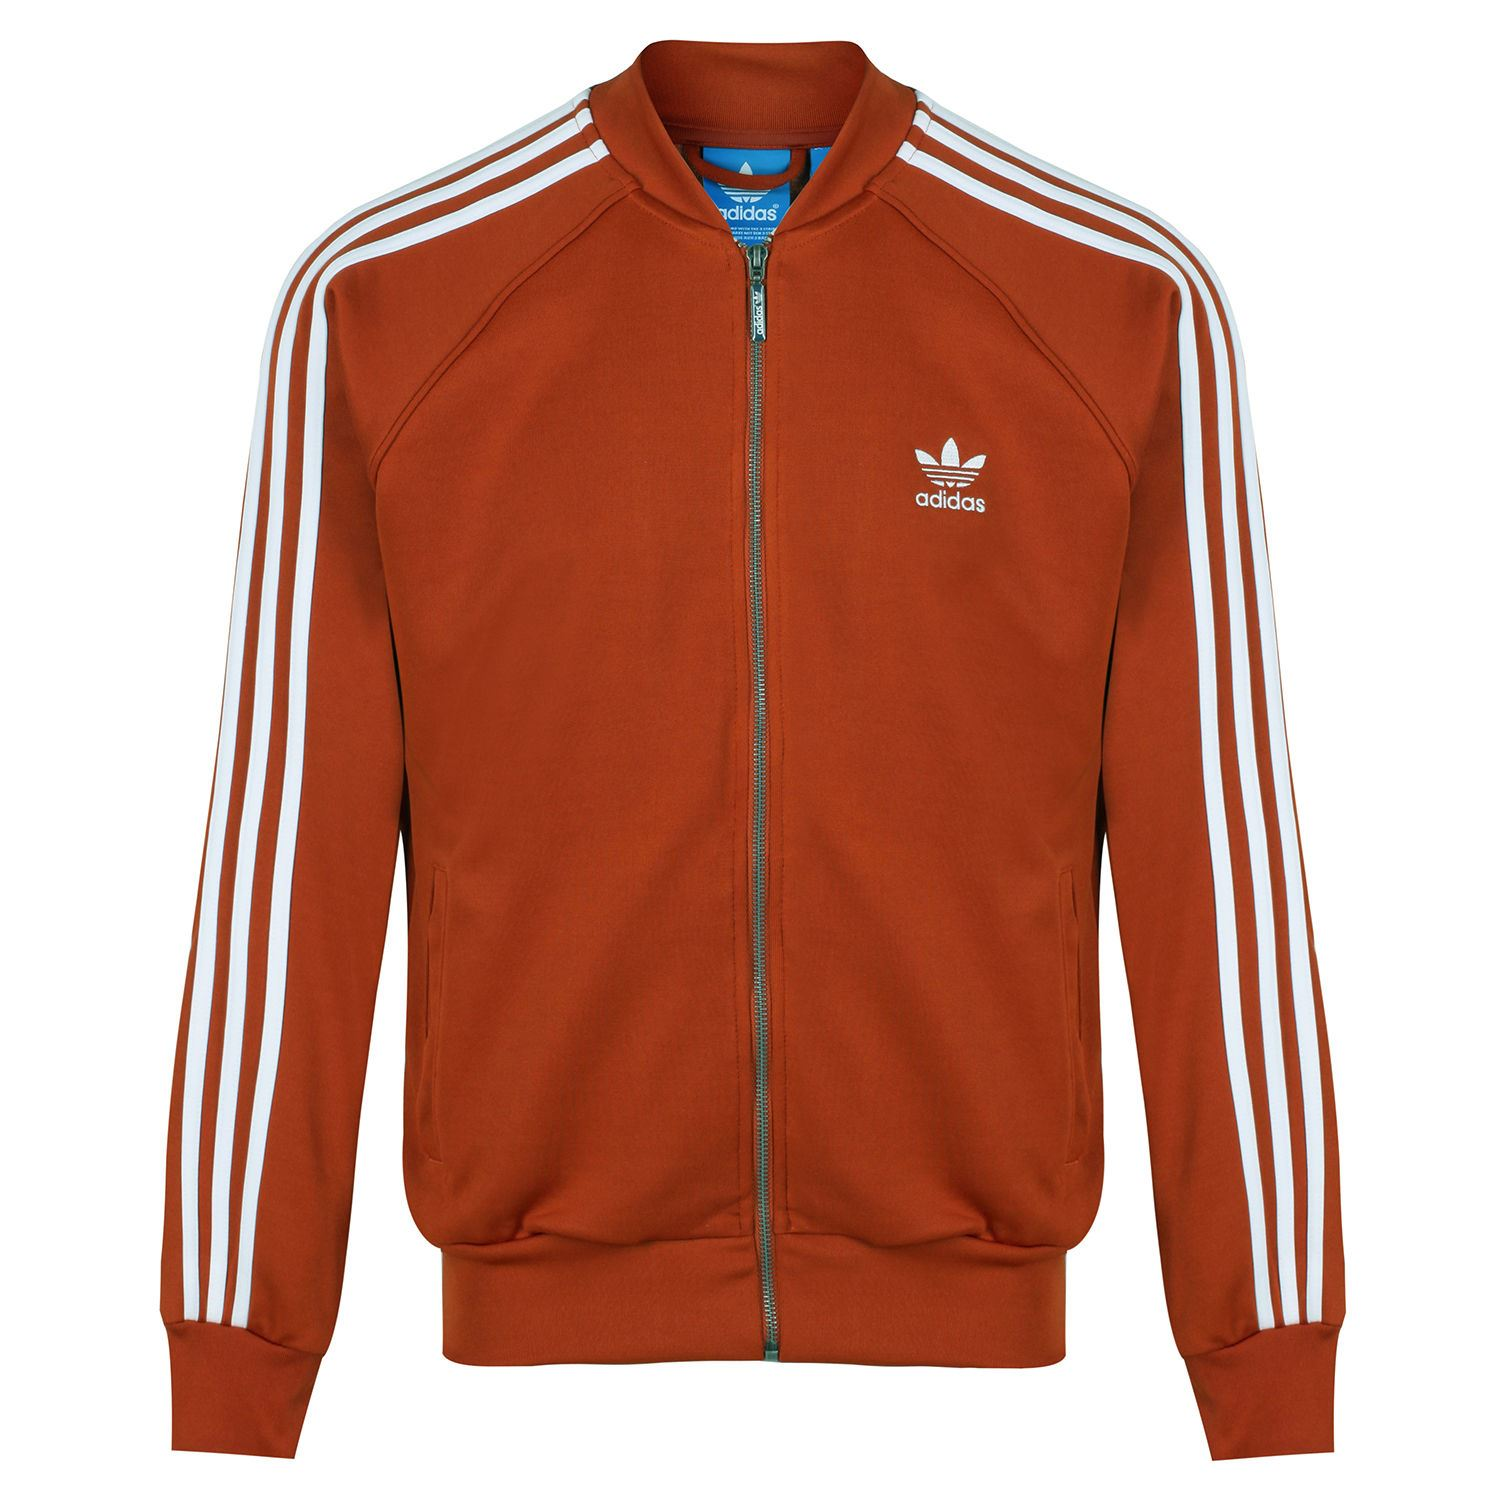 Details about adidas ORIGINALS SUPERSTAR TRACK TOP MEN'S JACKET RED GREEN NAVY RETRO 70S 80S